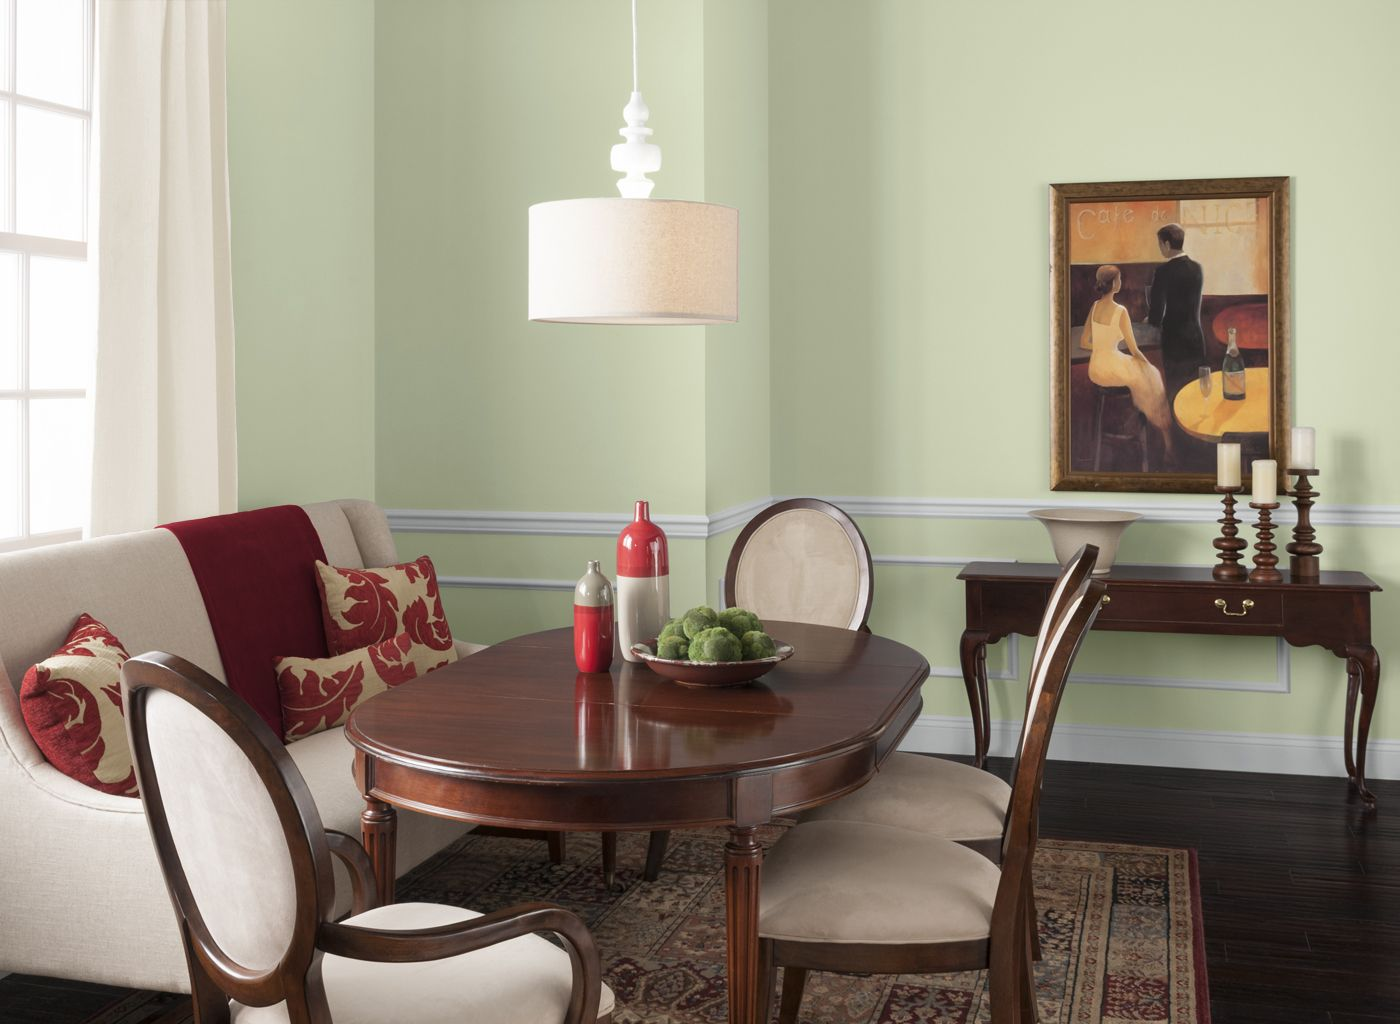 Dining Room in Iced Green Grape. Dining Room in Iced Green Grape   painted rooms   Pinterest